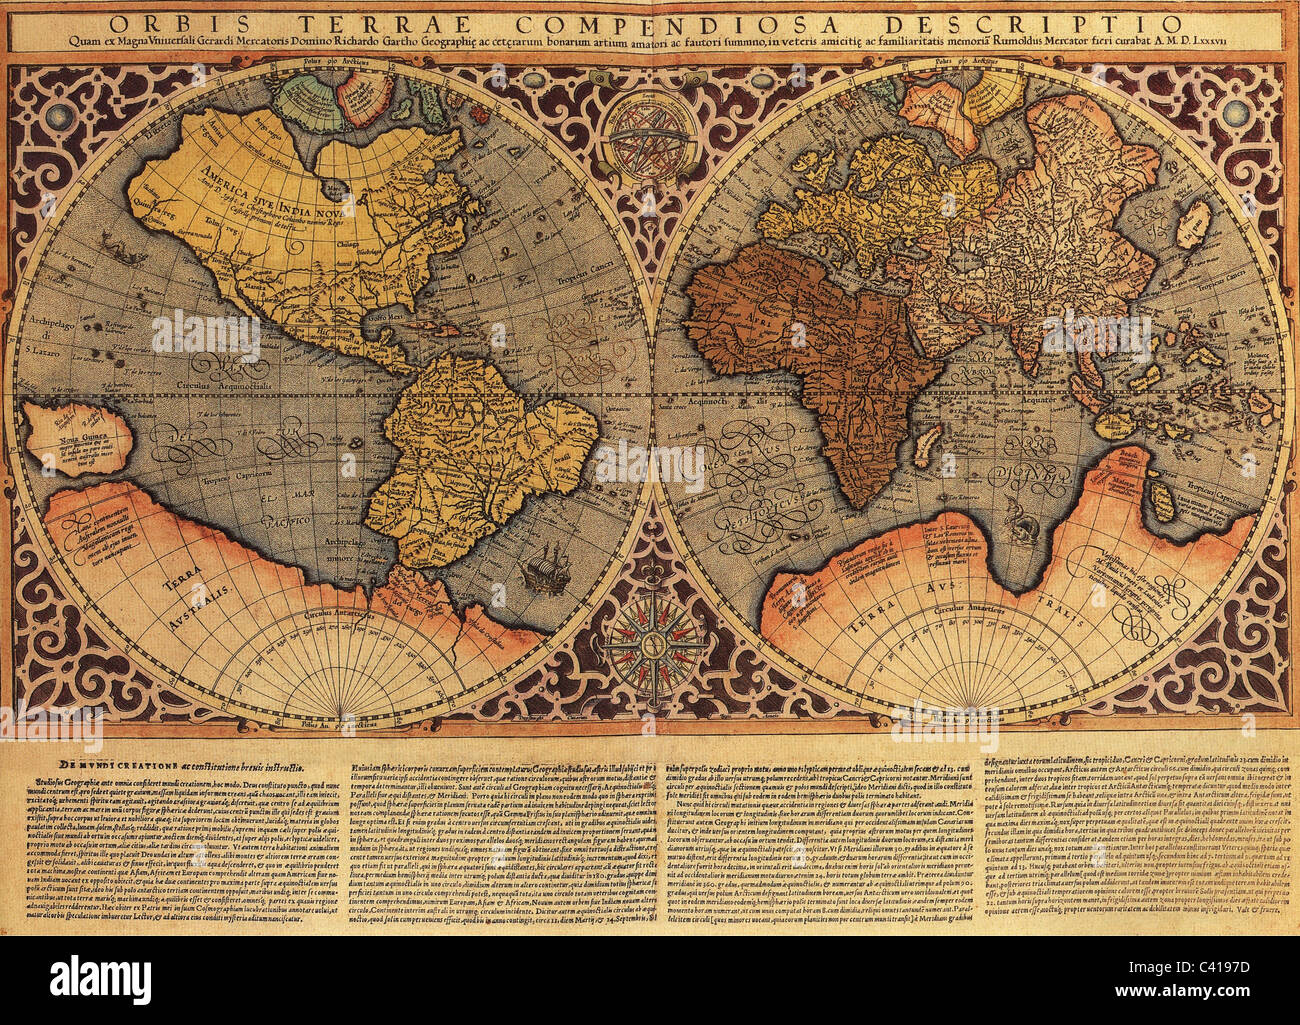 Cartography maps of the world world map by rumold mercator from cartography maps of the world world map by rumold mercator from atlas sive cosmographicae meditationes de fabrica mundi et f sciox Choice Image